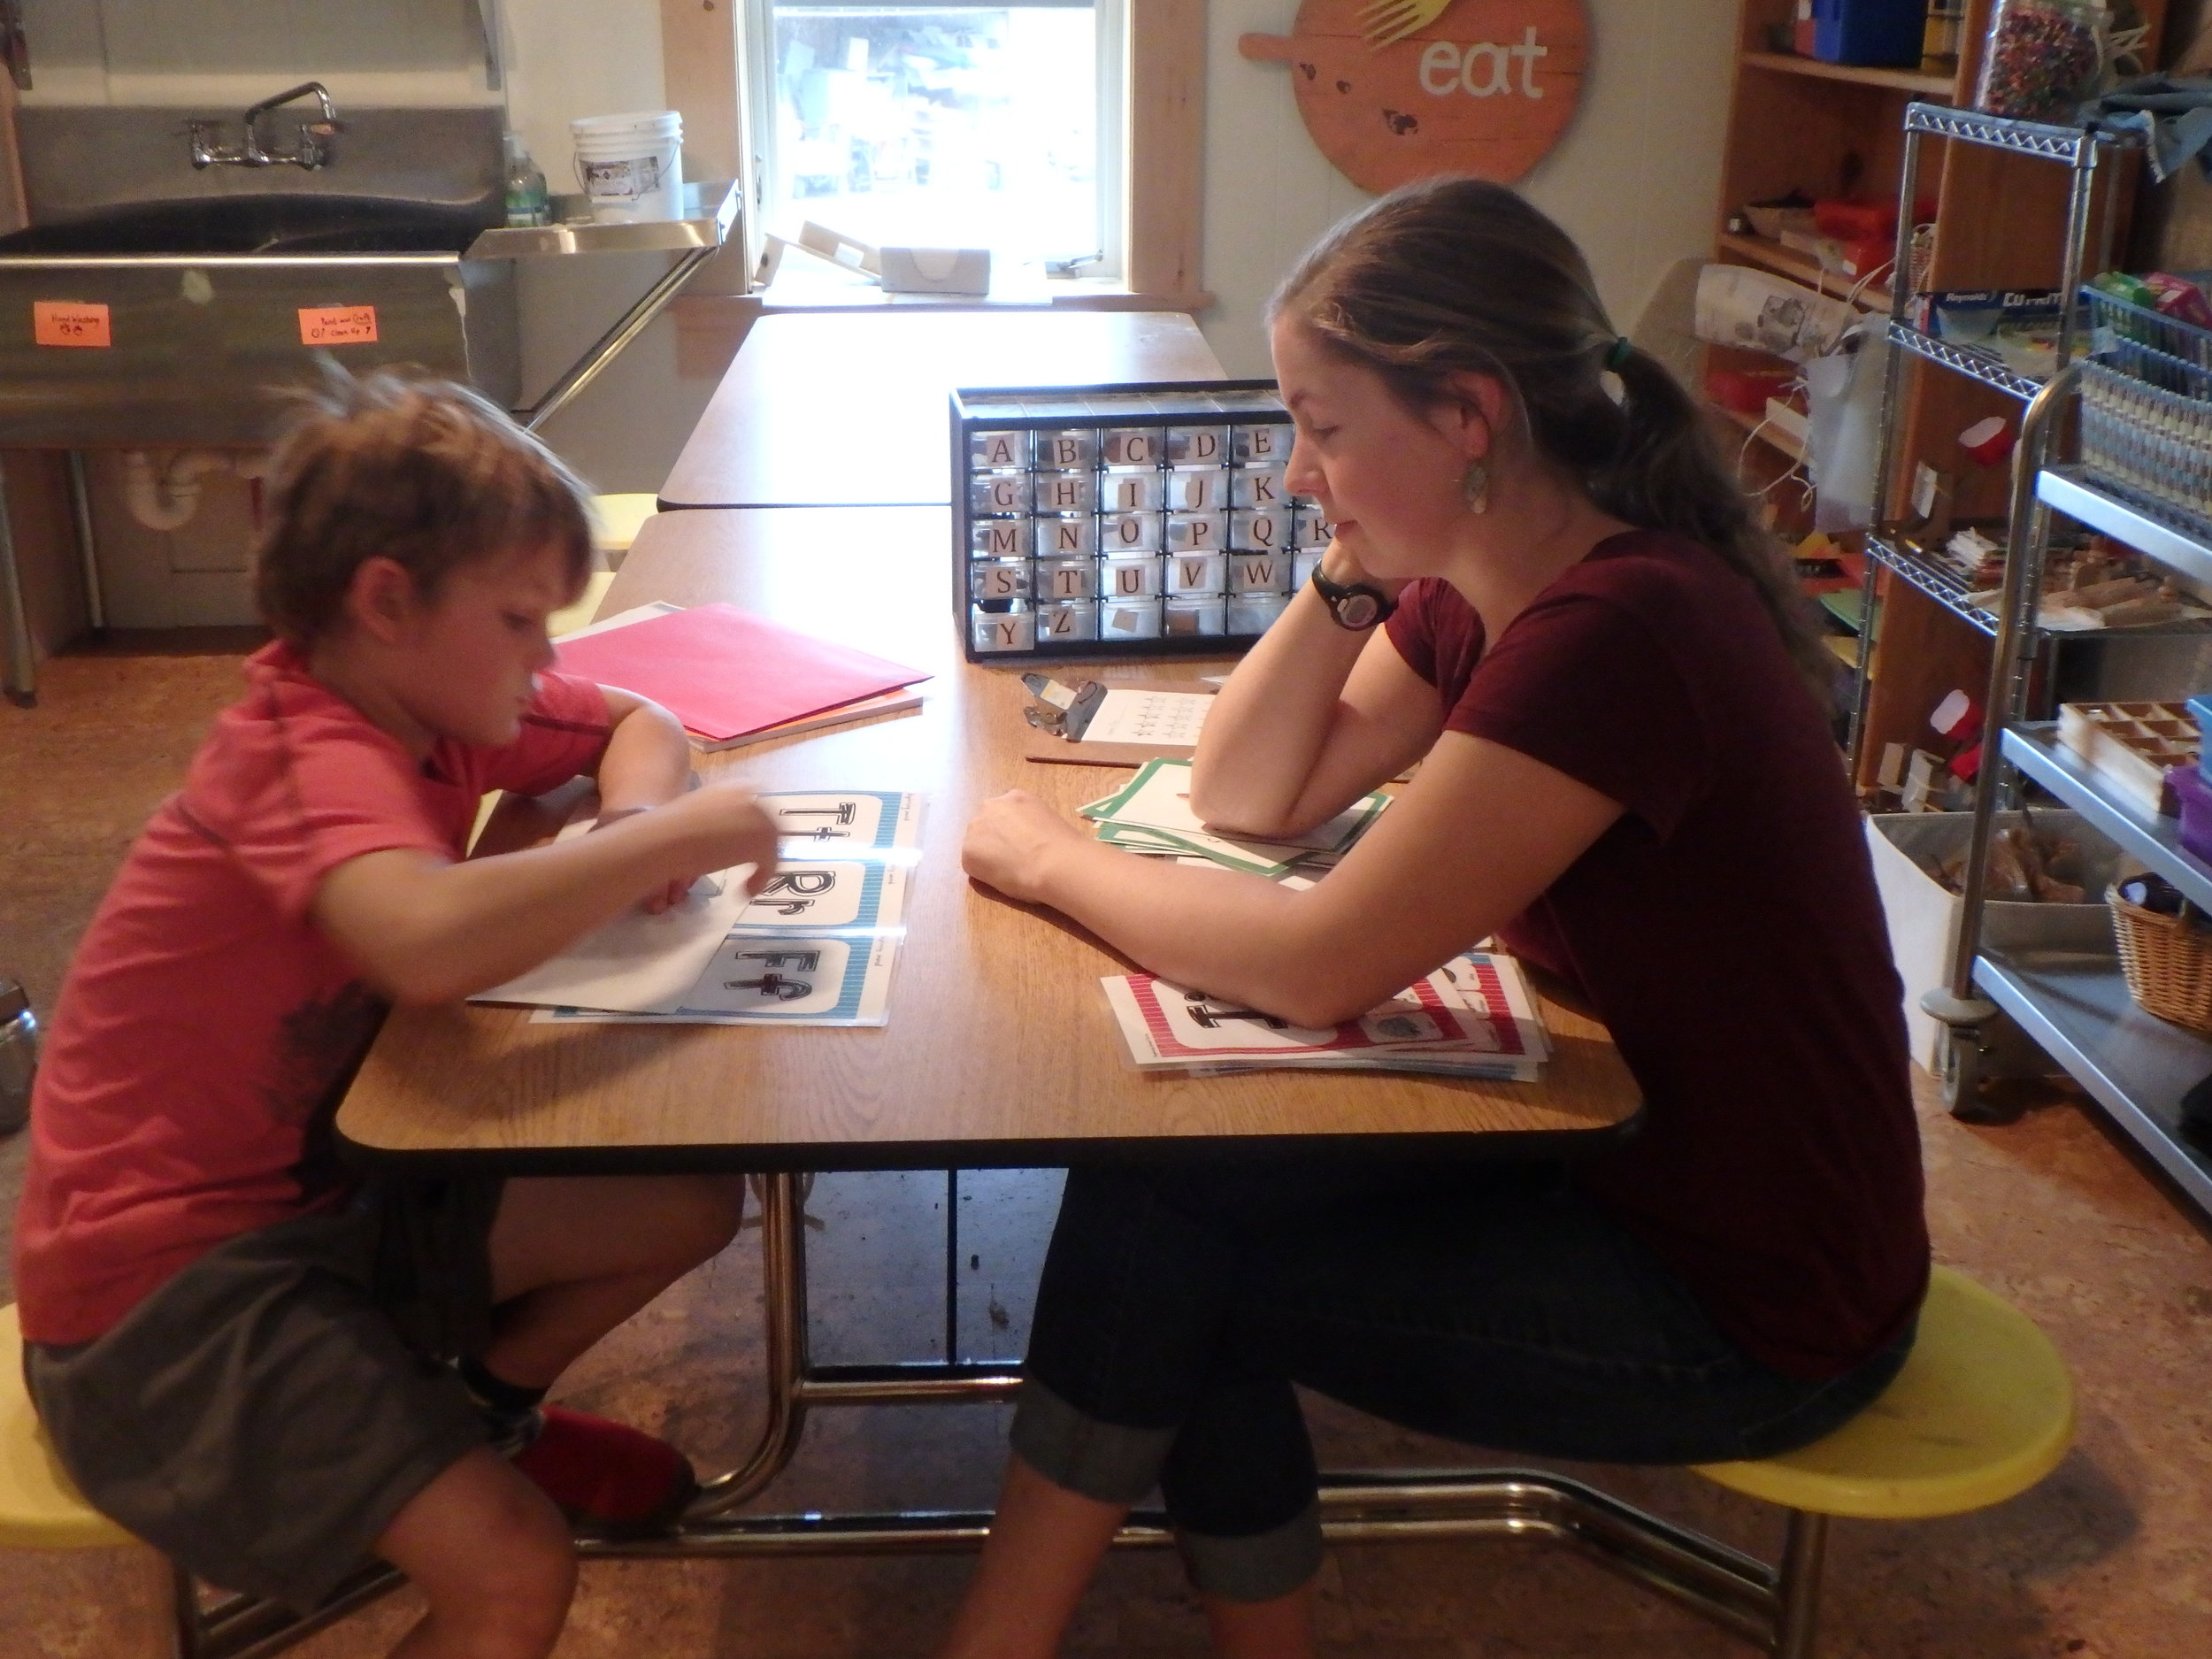 ...a student asks to learn how to read? - We teach them, of course! Using a variety of approaches, we meet the child where he or she is at and teach them to read one sound at a time.